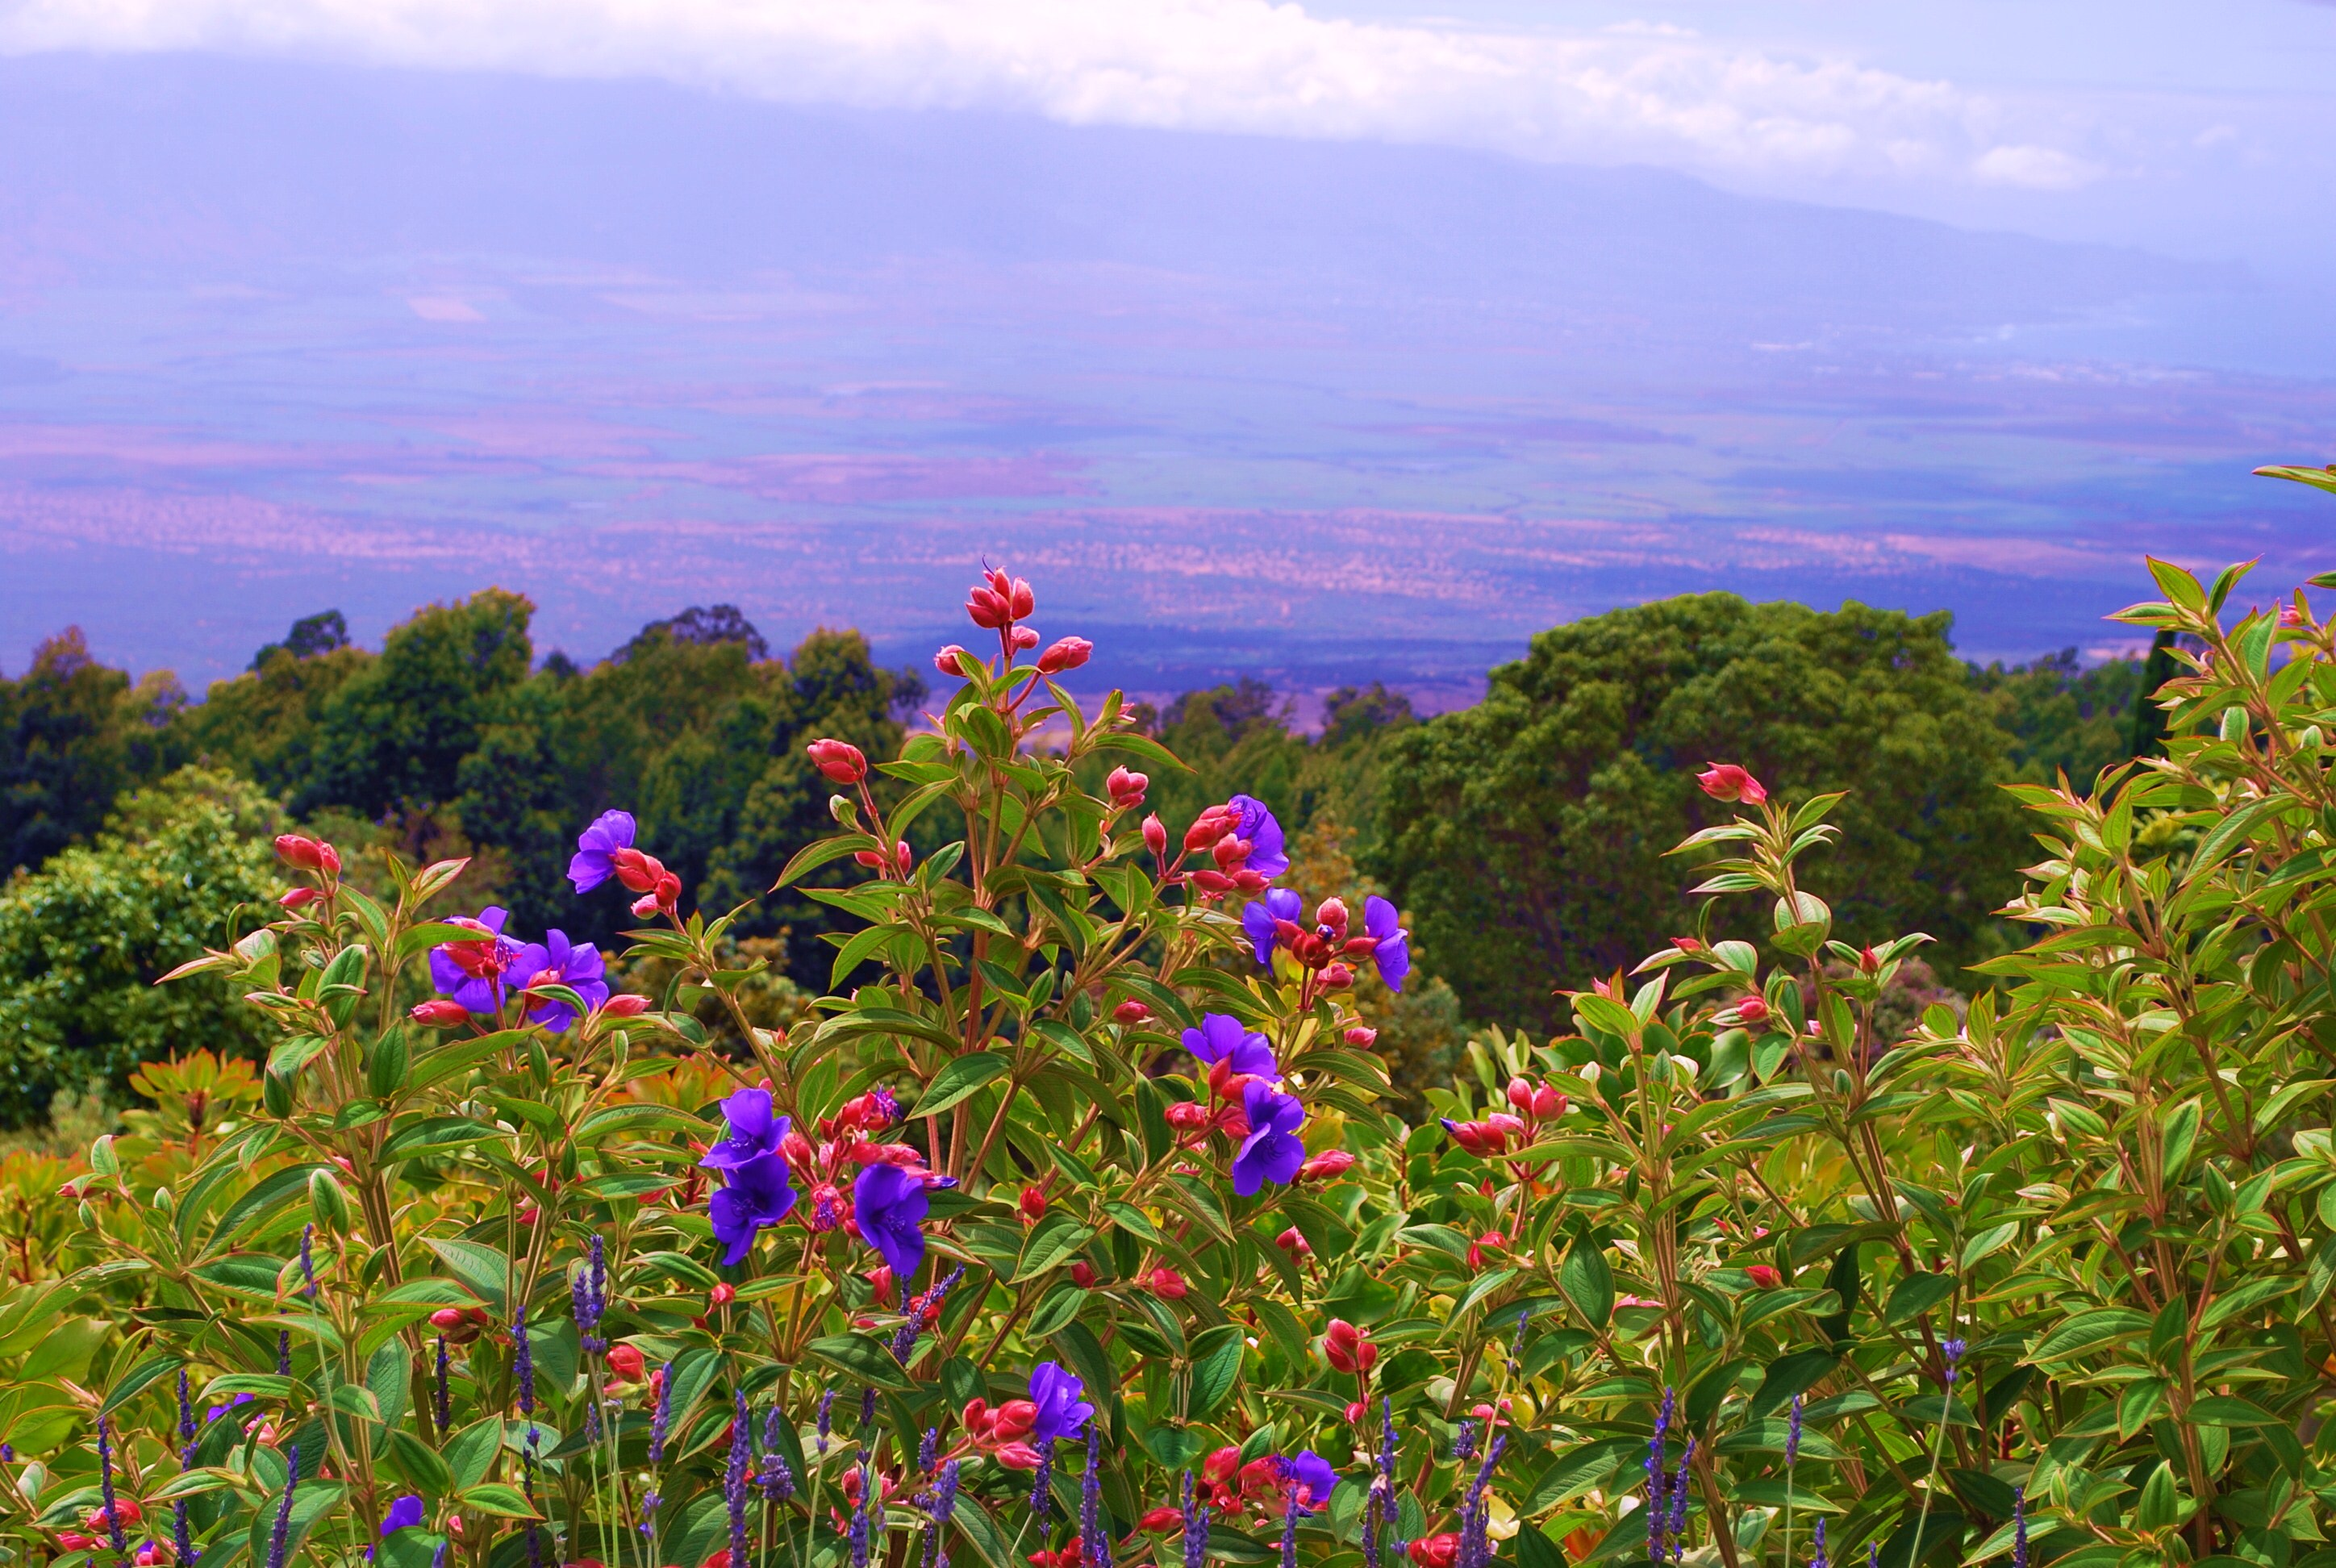 View from the Lavender Farm